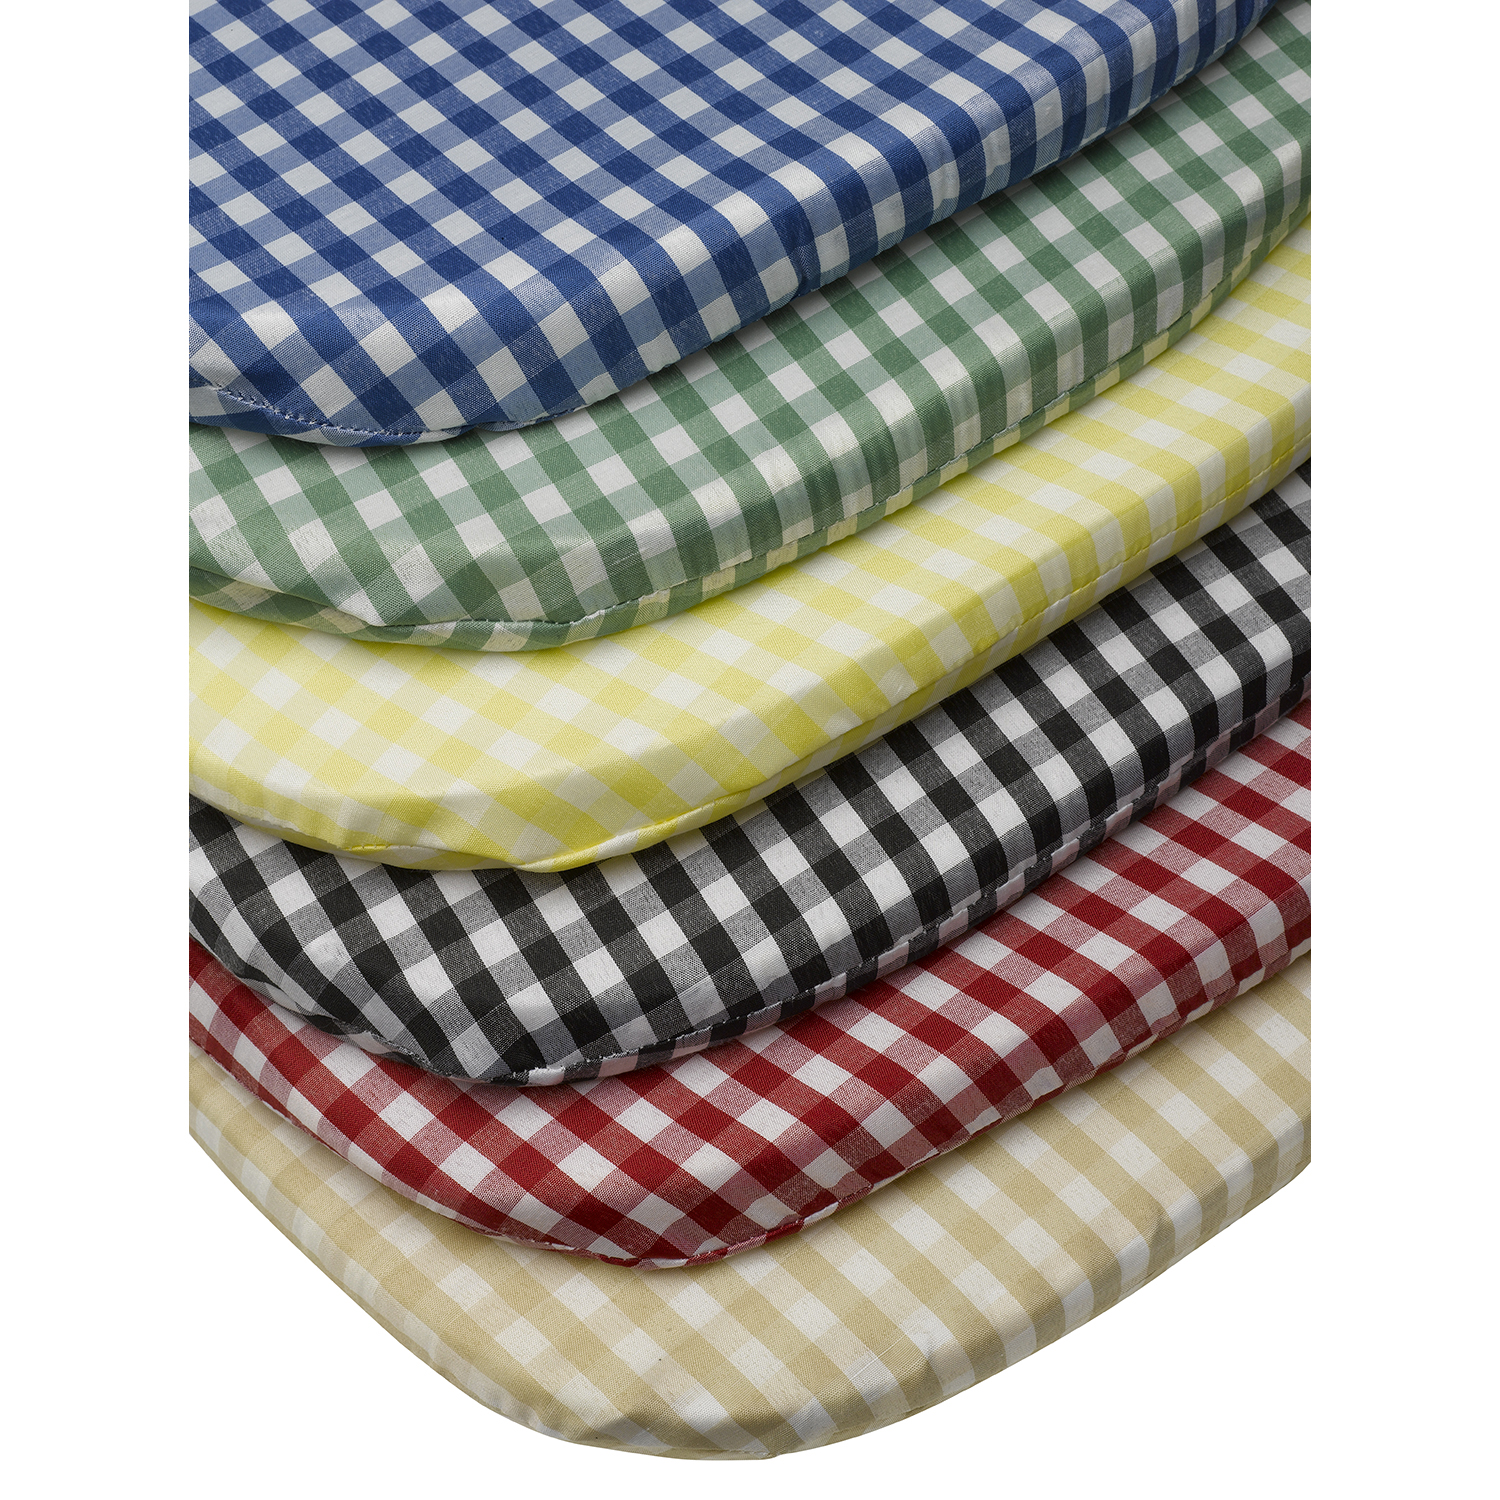 gingham check tie on seat pad 16 x 16 kitchen outdoor dining